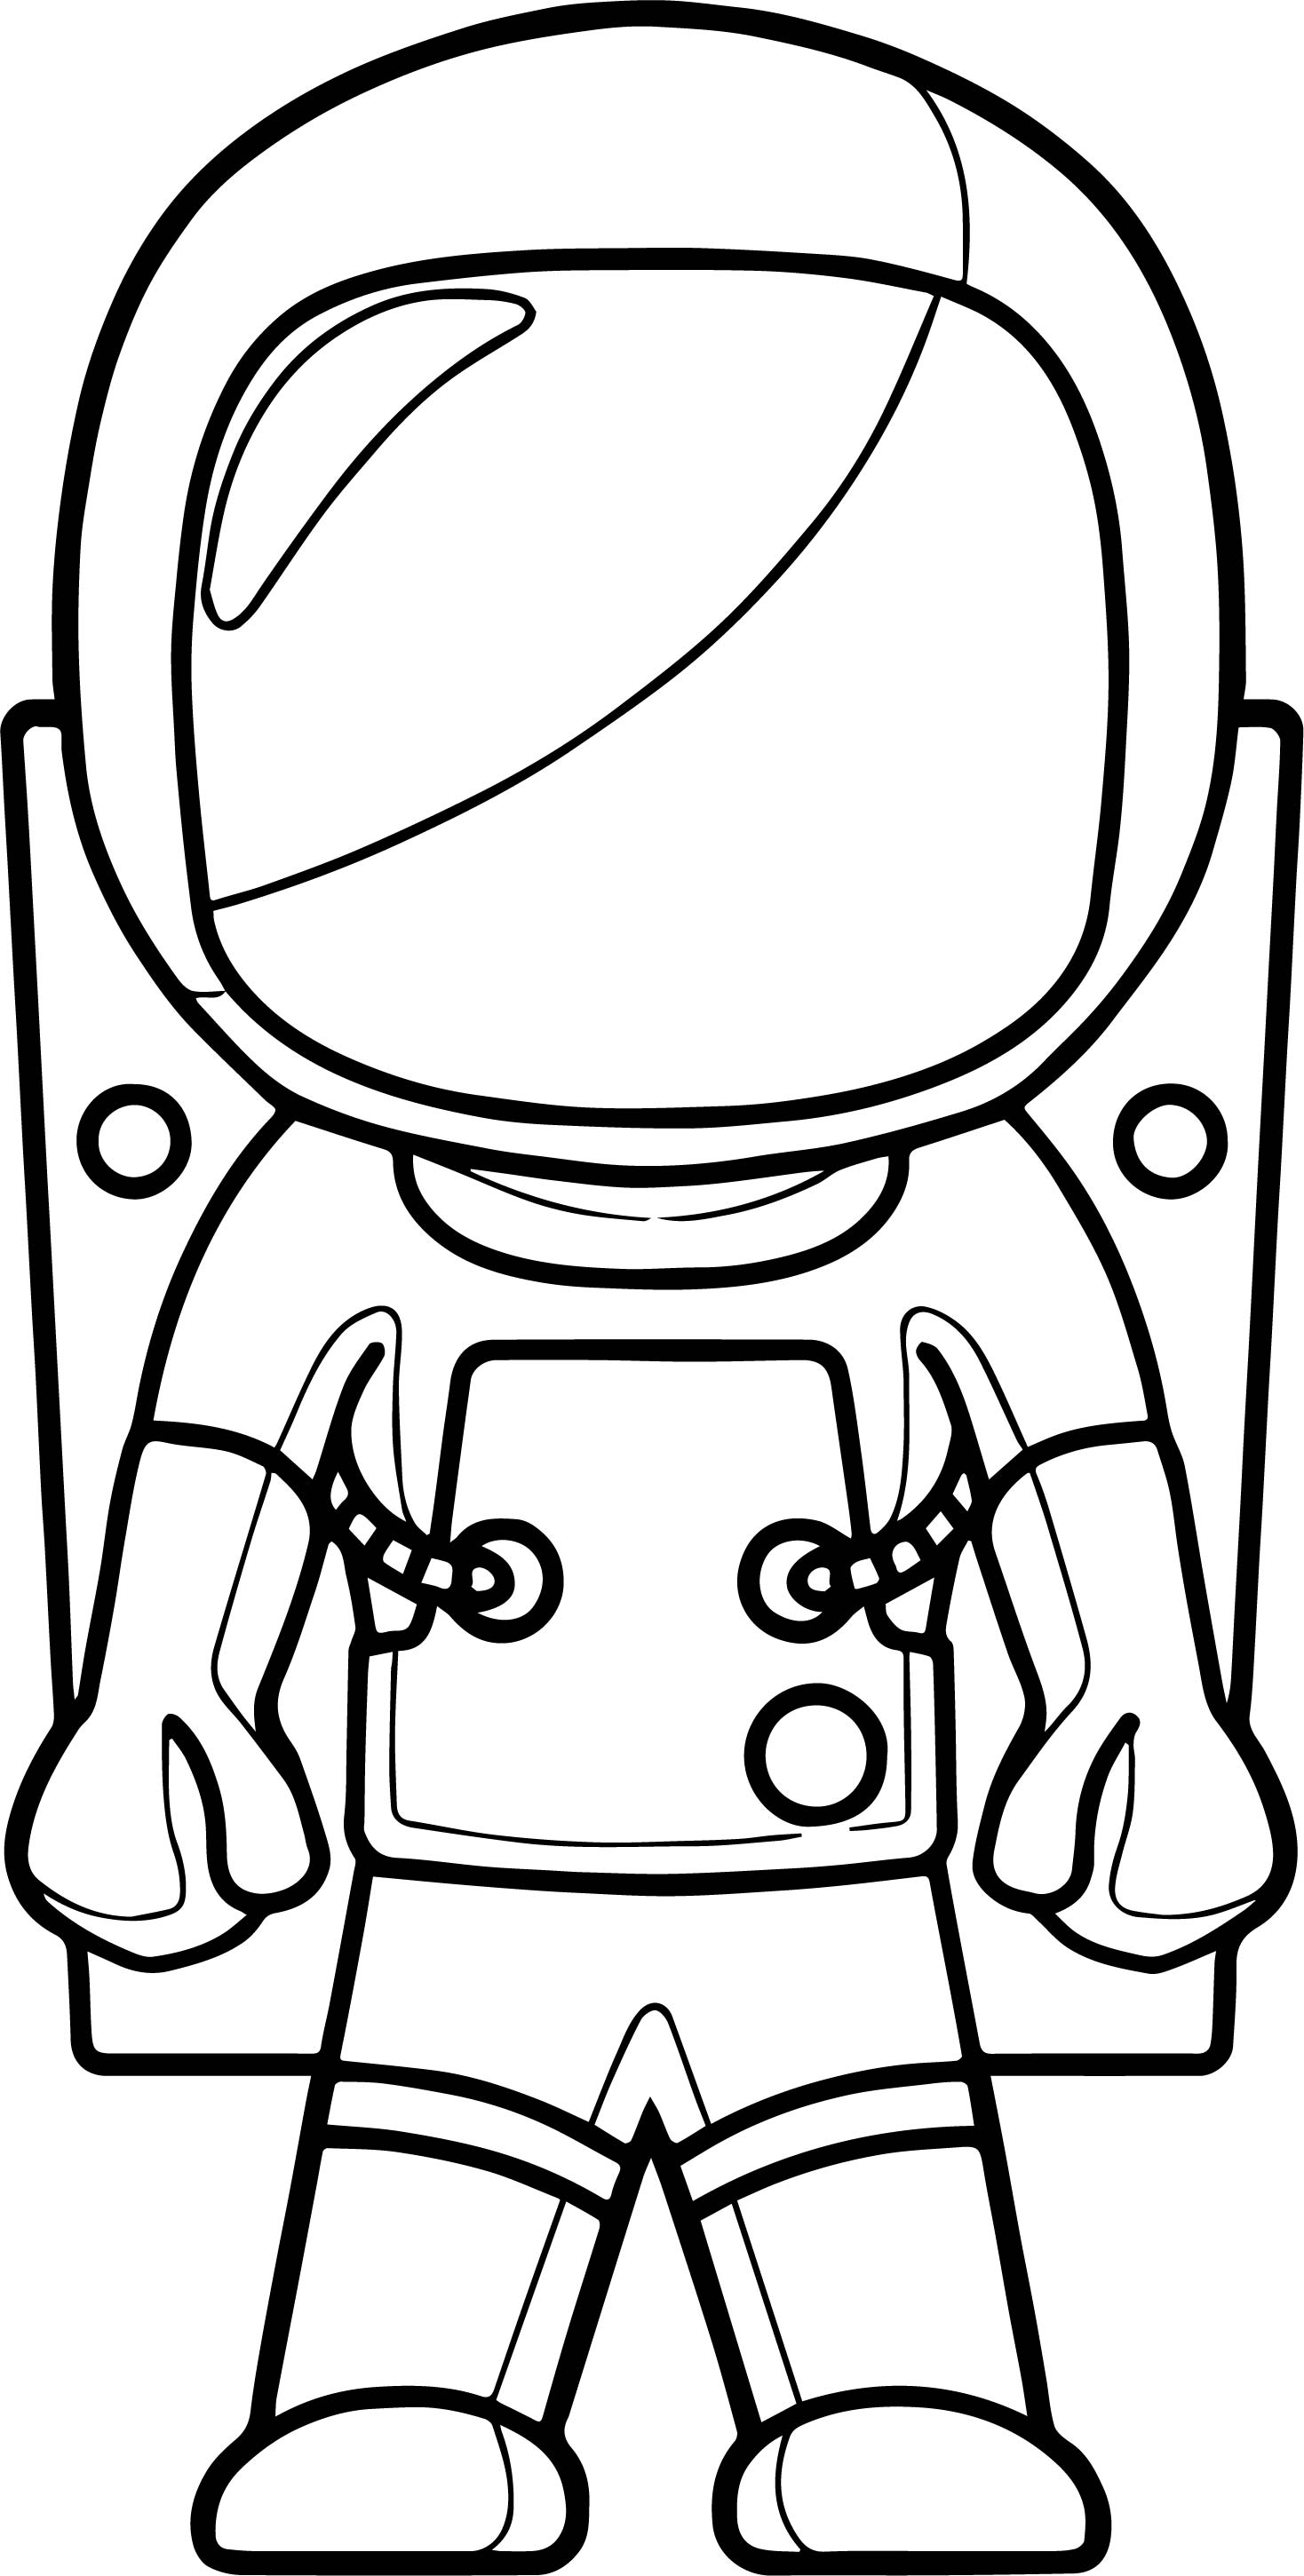 Astronaut Front View Coloring Page